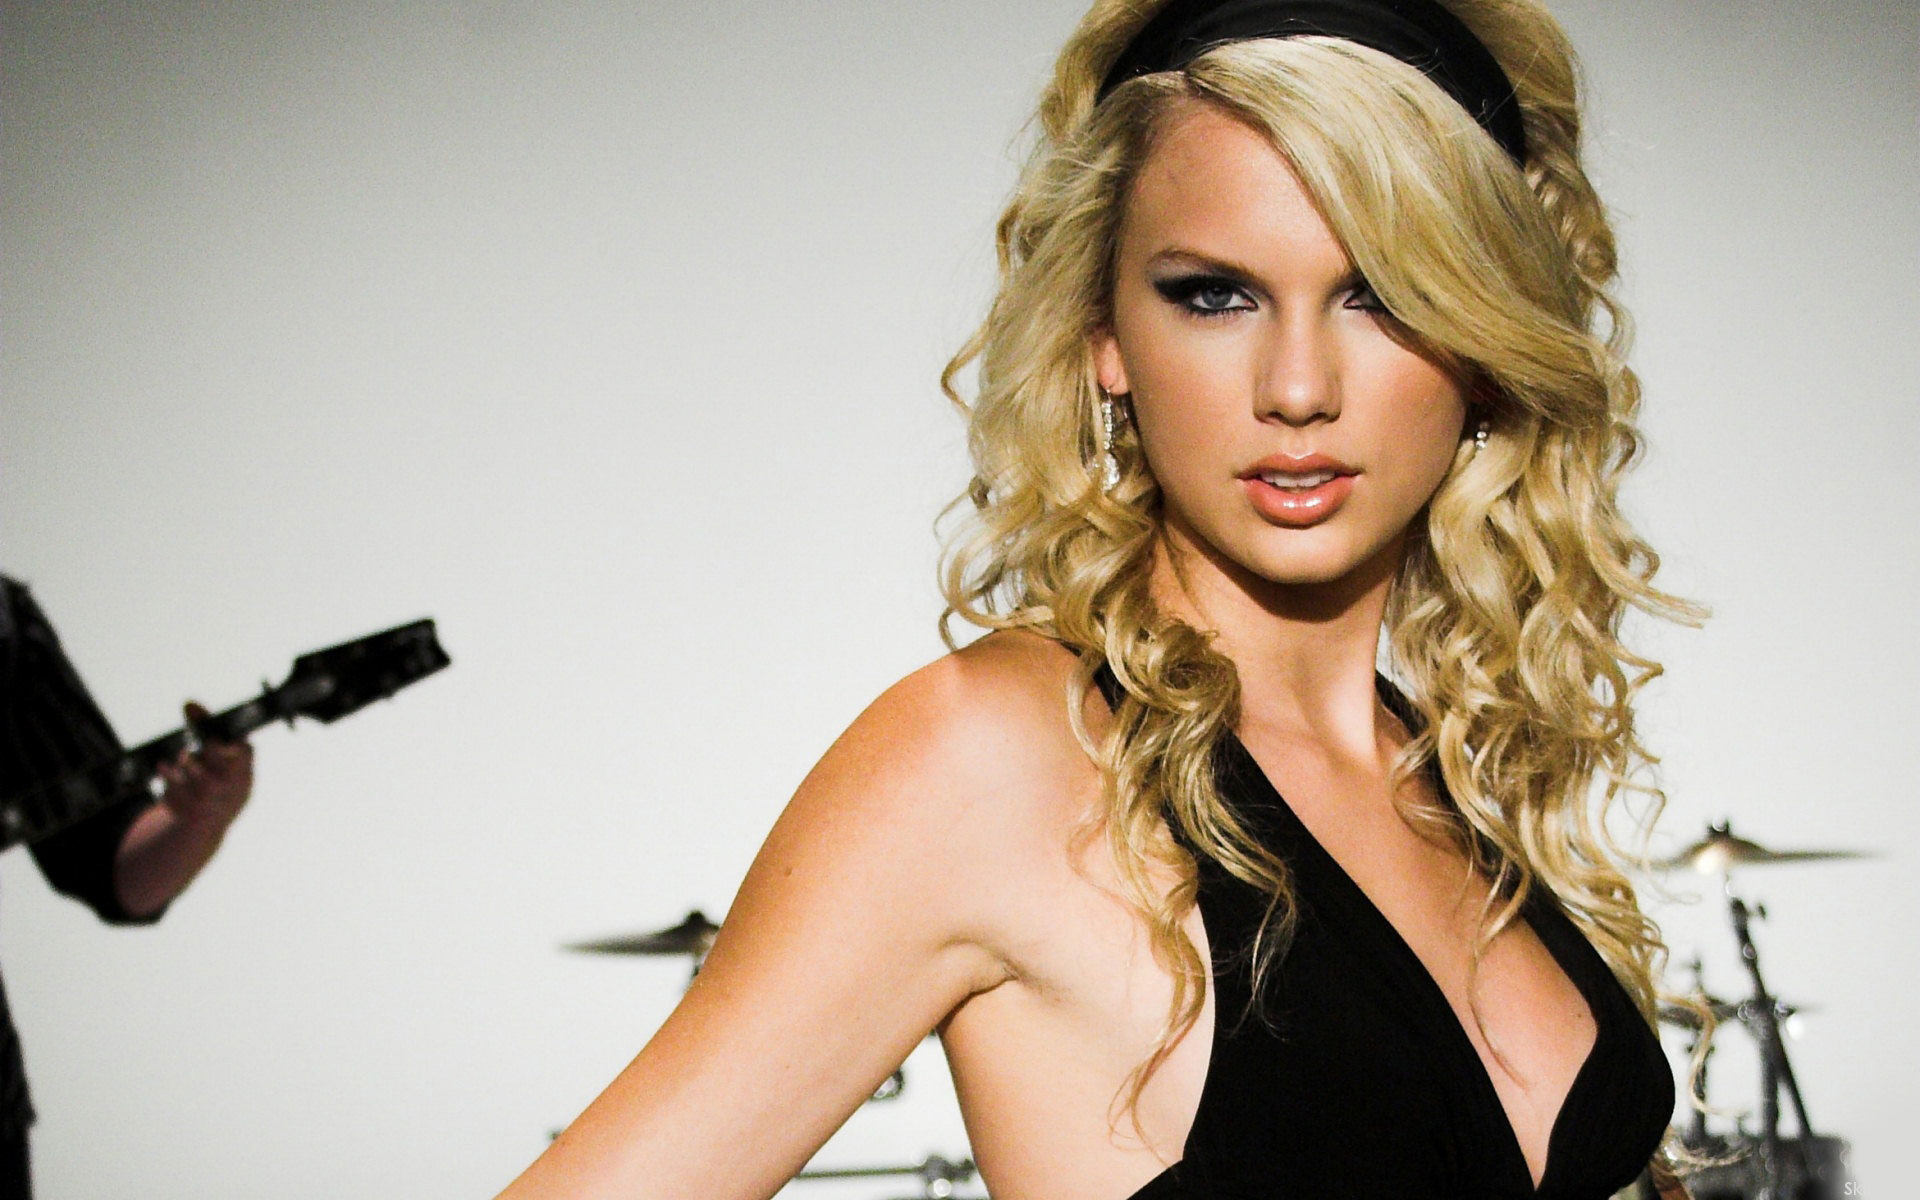 Taylor Swift Album Images Our Song Music Video Hd Wallpaper And Background Photos